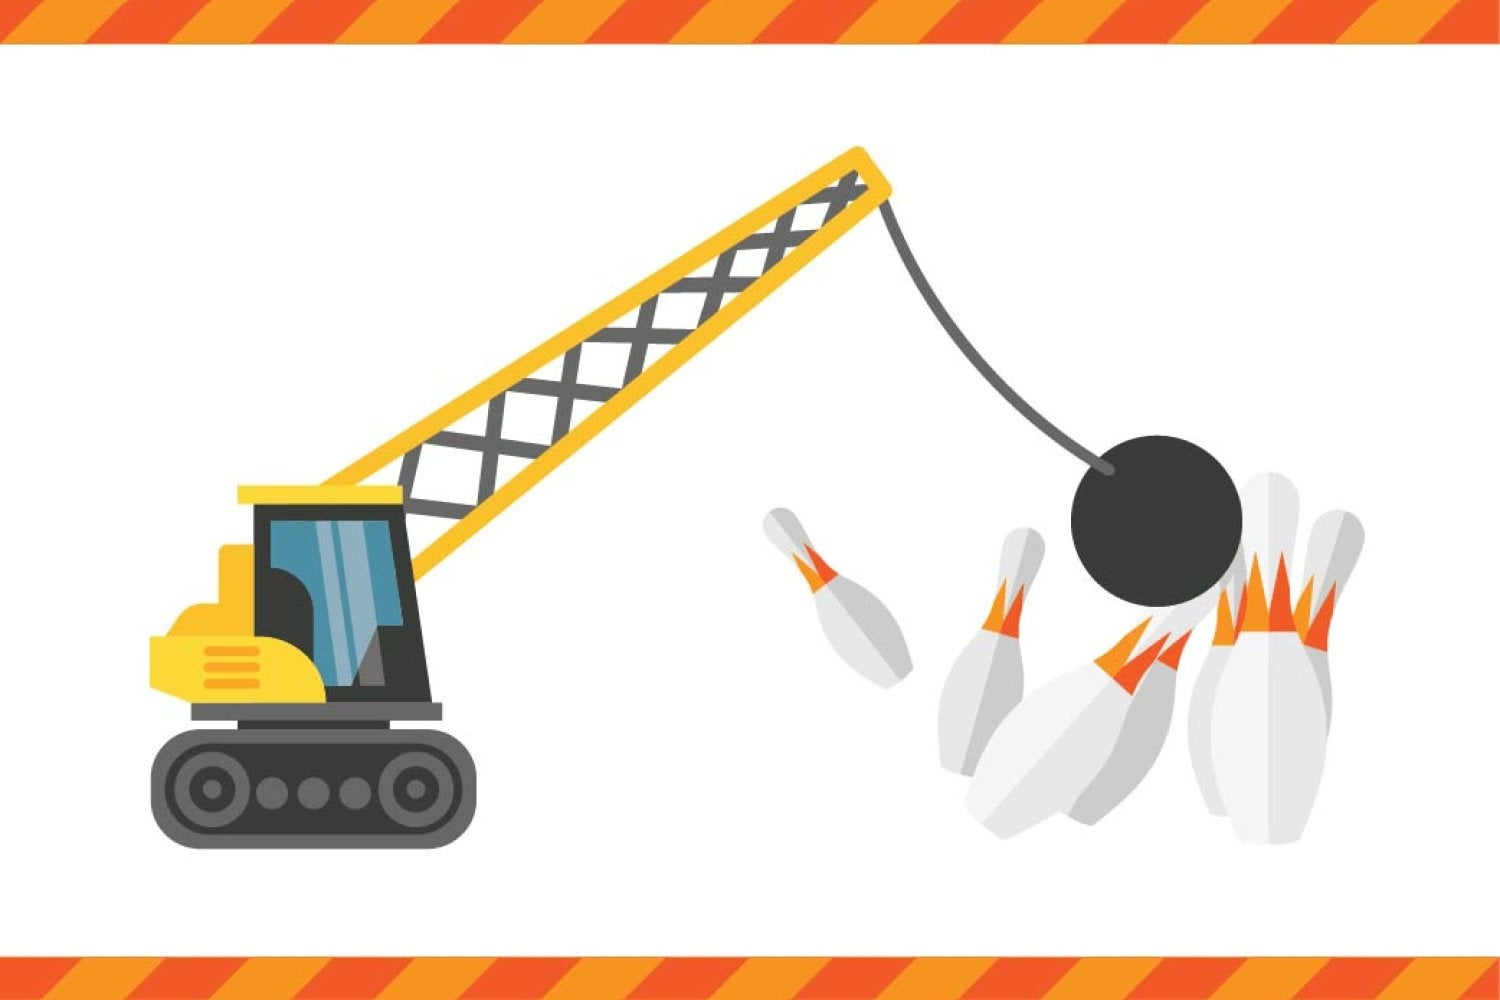 An illustration of a crane with a wrecking ball knocking over bowling pins